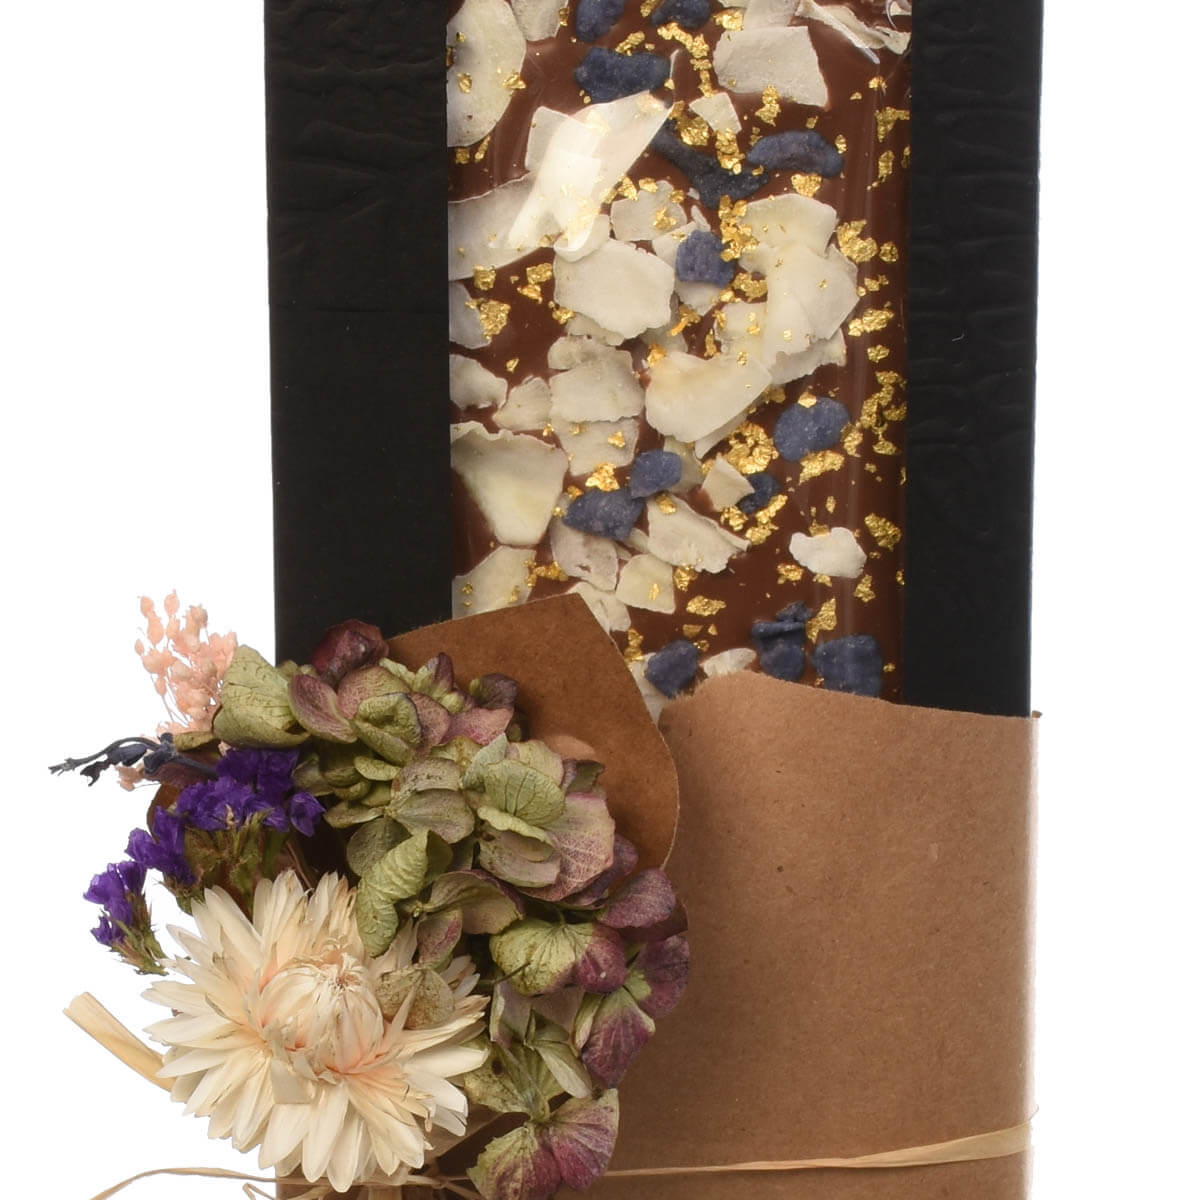 Adele Rae chocolate bar with crystallized violet petals and coconut shavings